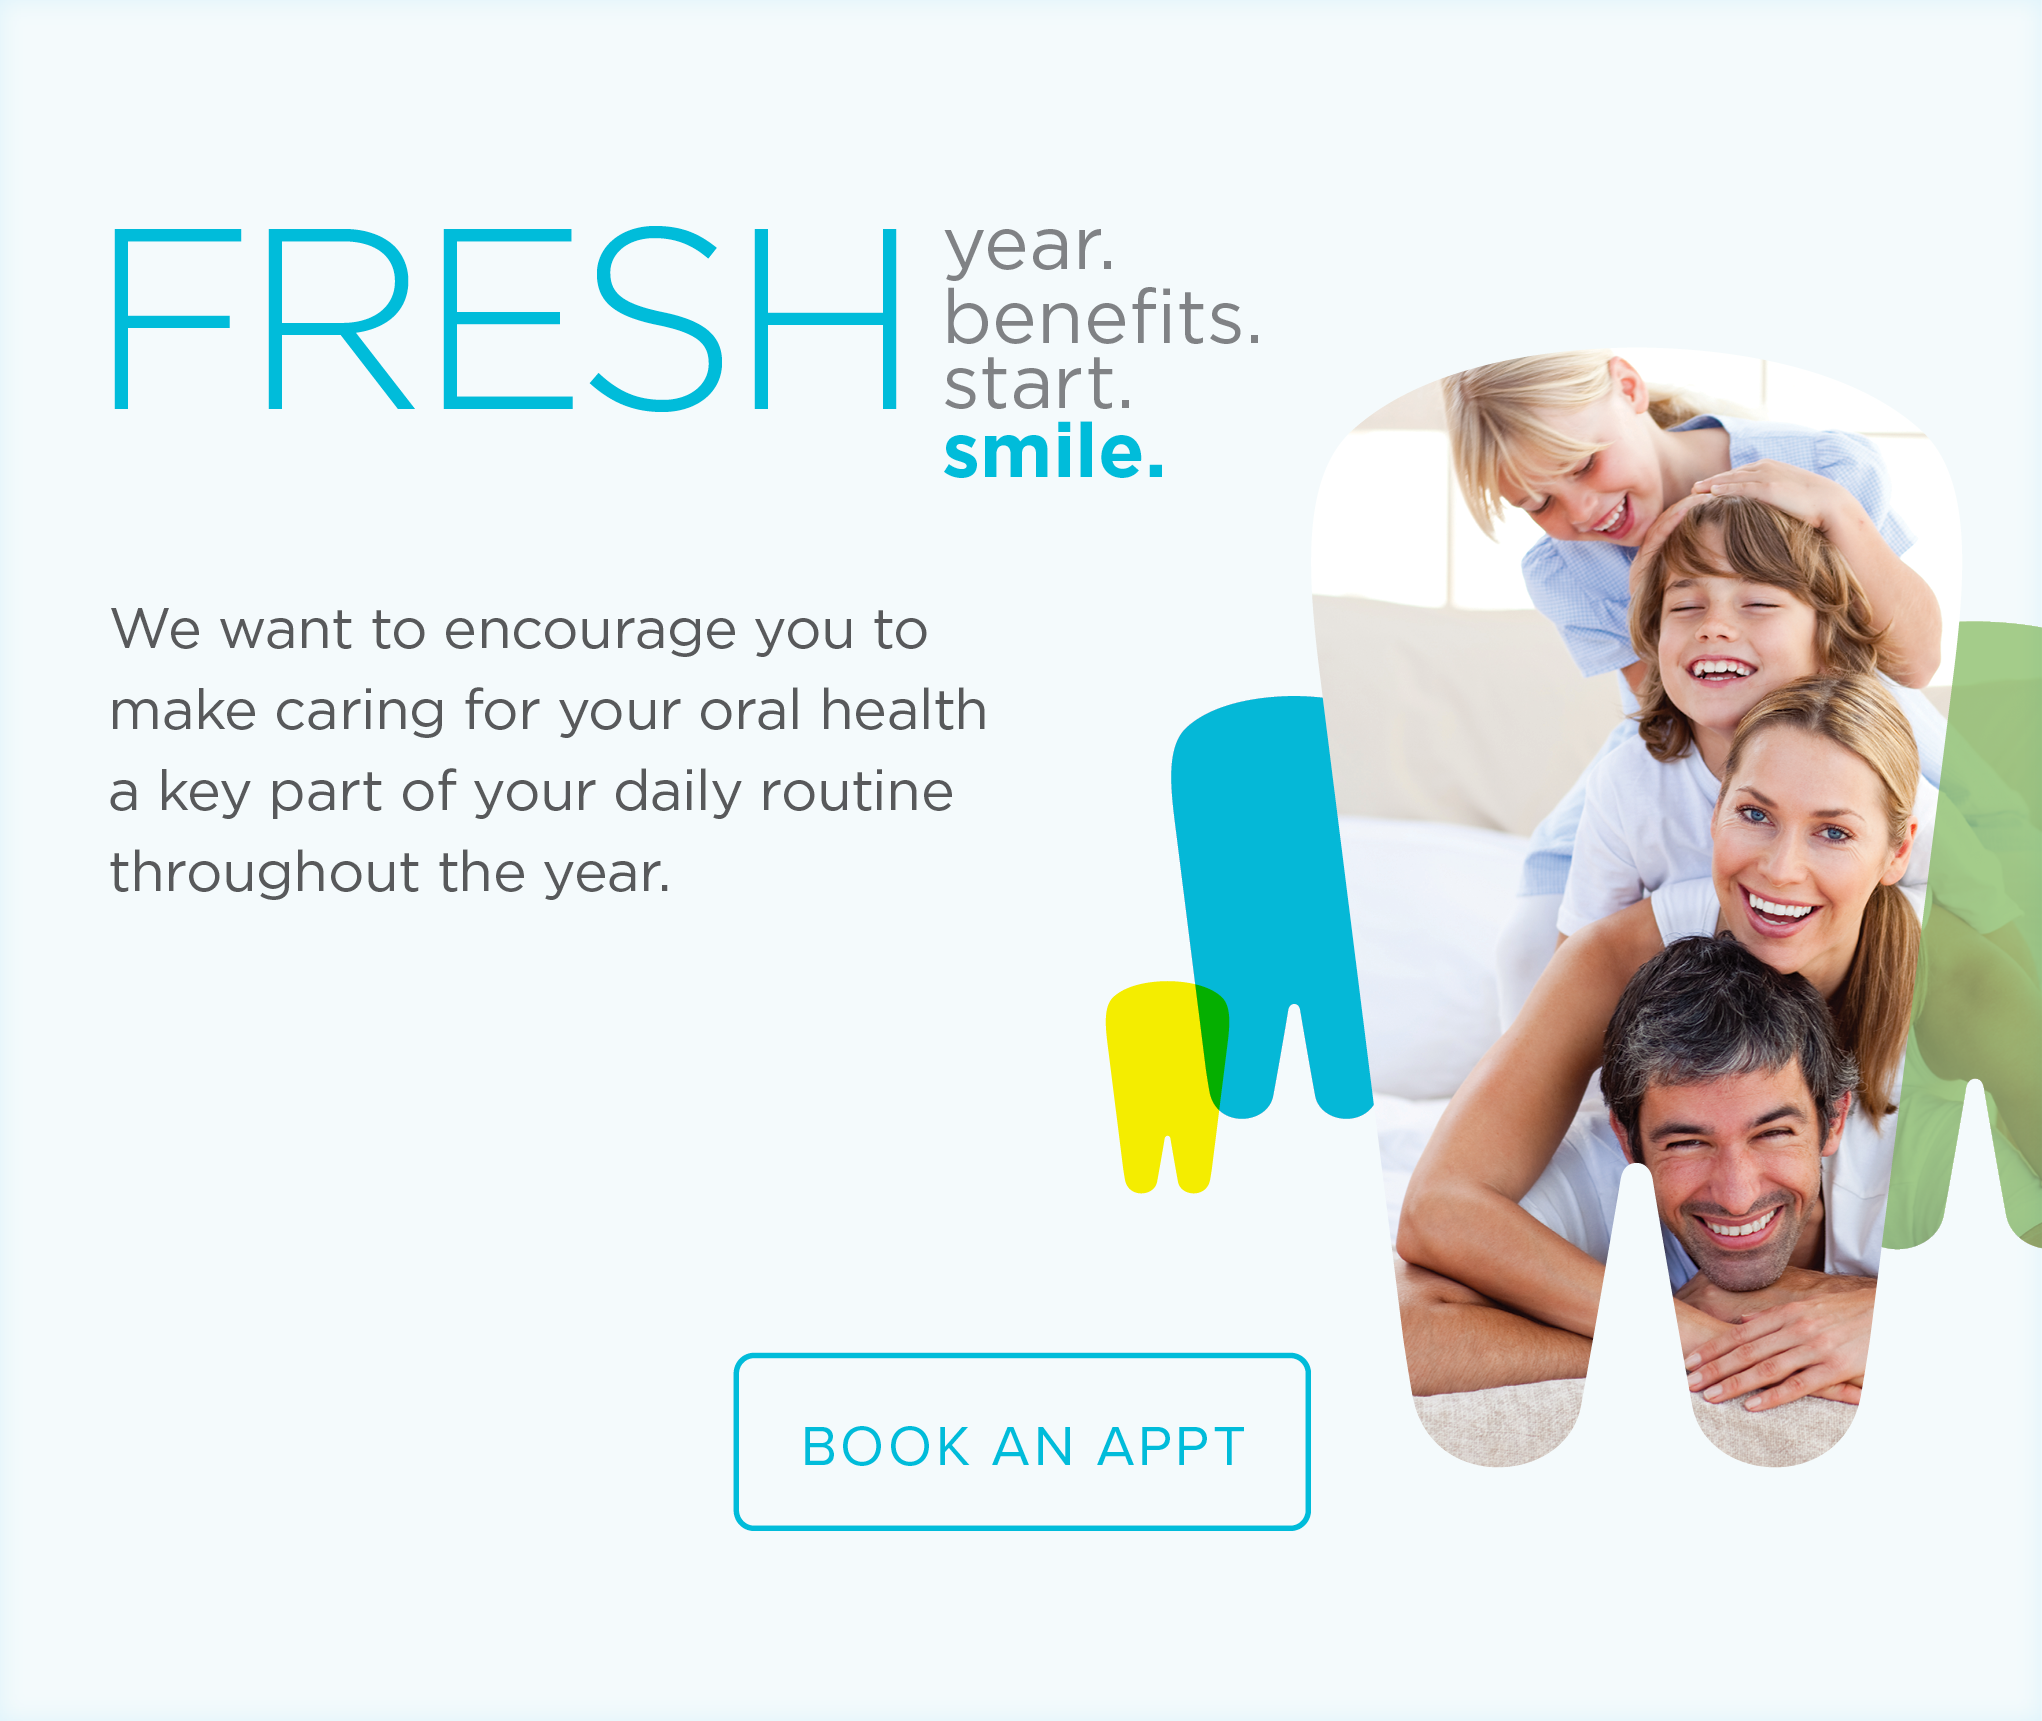 Rancho Dental Group and Orthodontics - Make the Most of Your Benefits